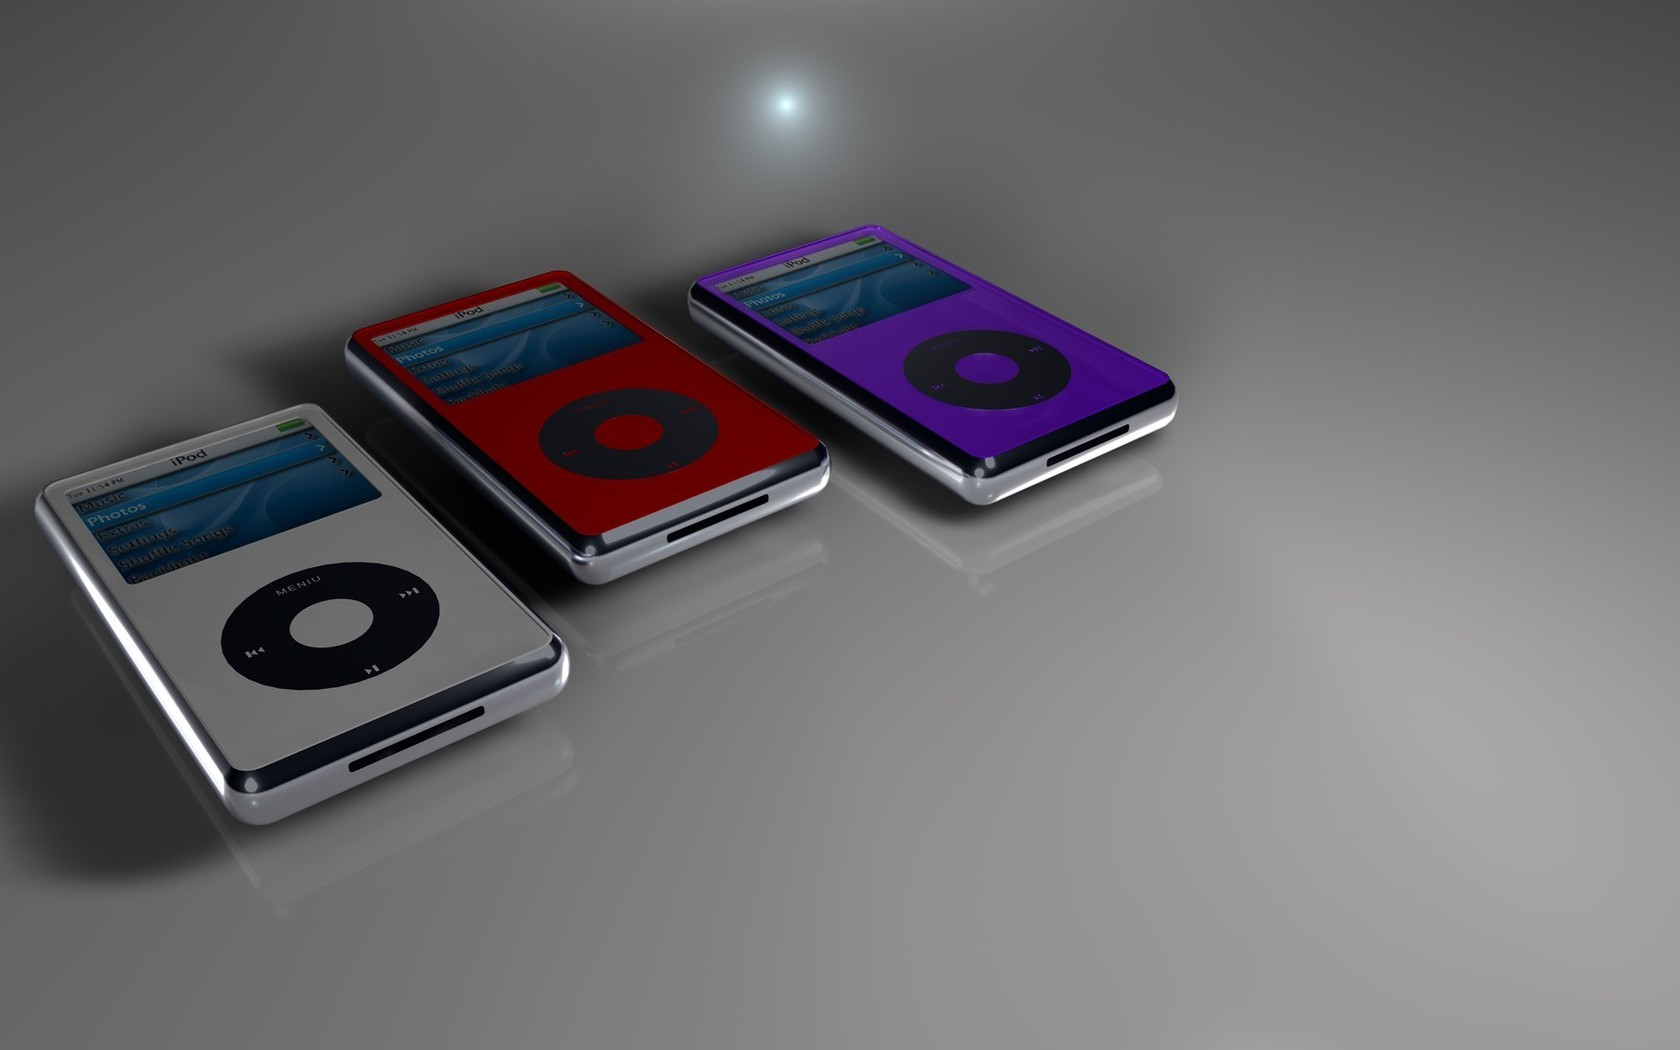 Abstract Ipod Music Player Wallpaper